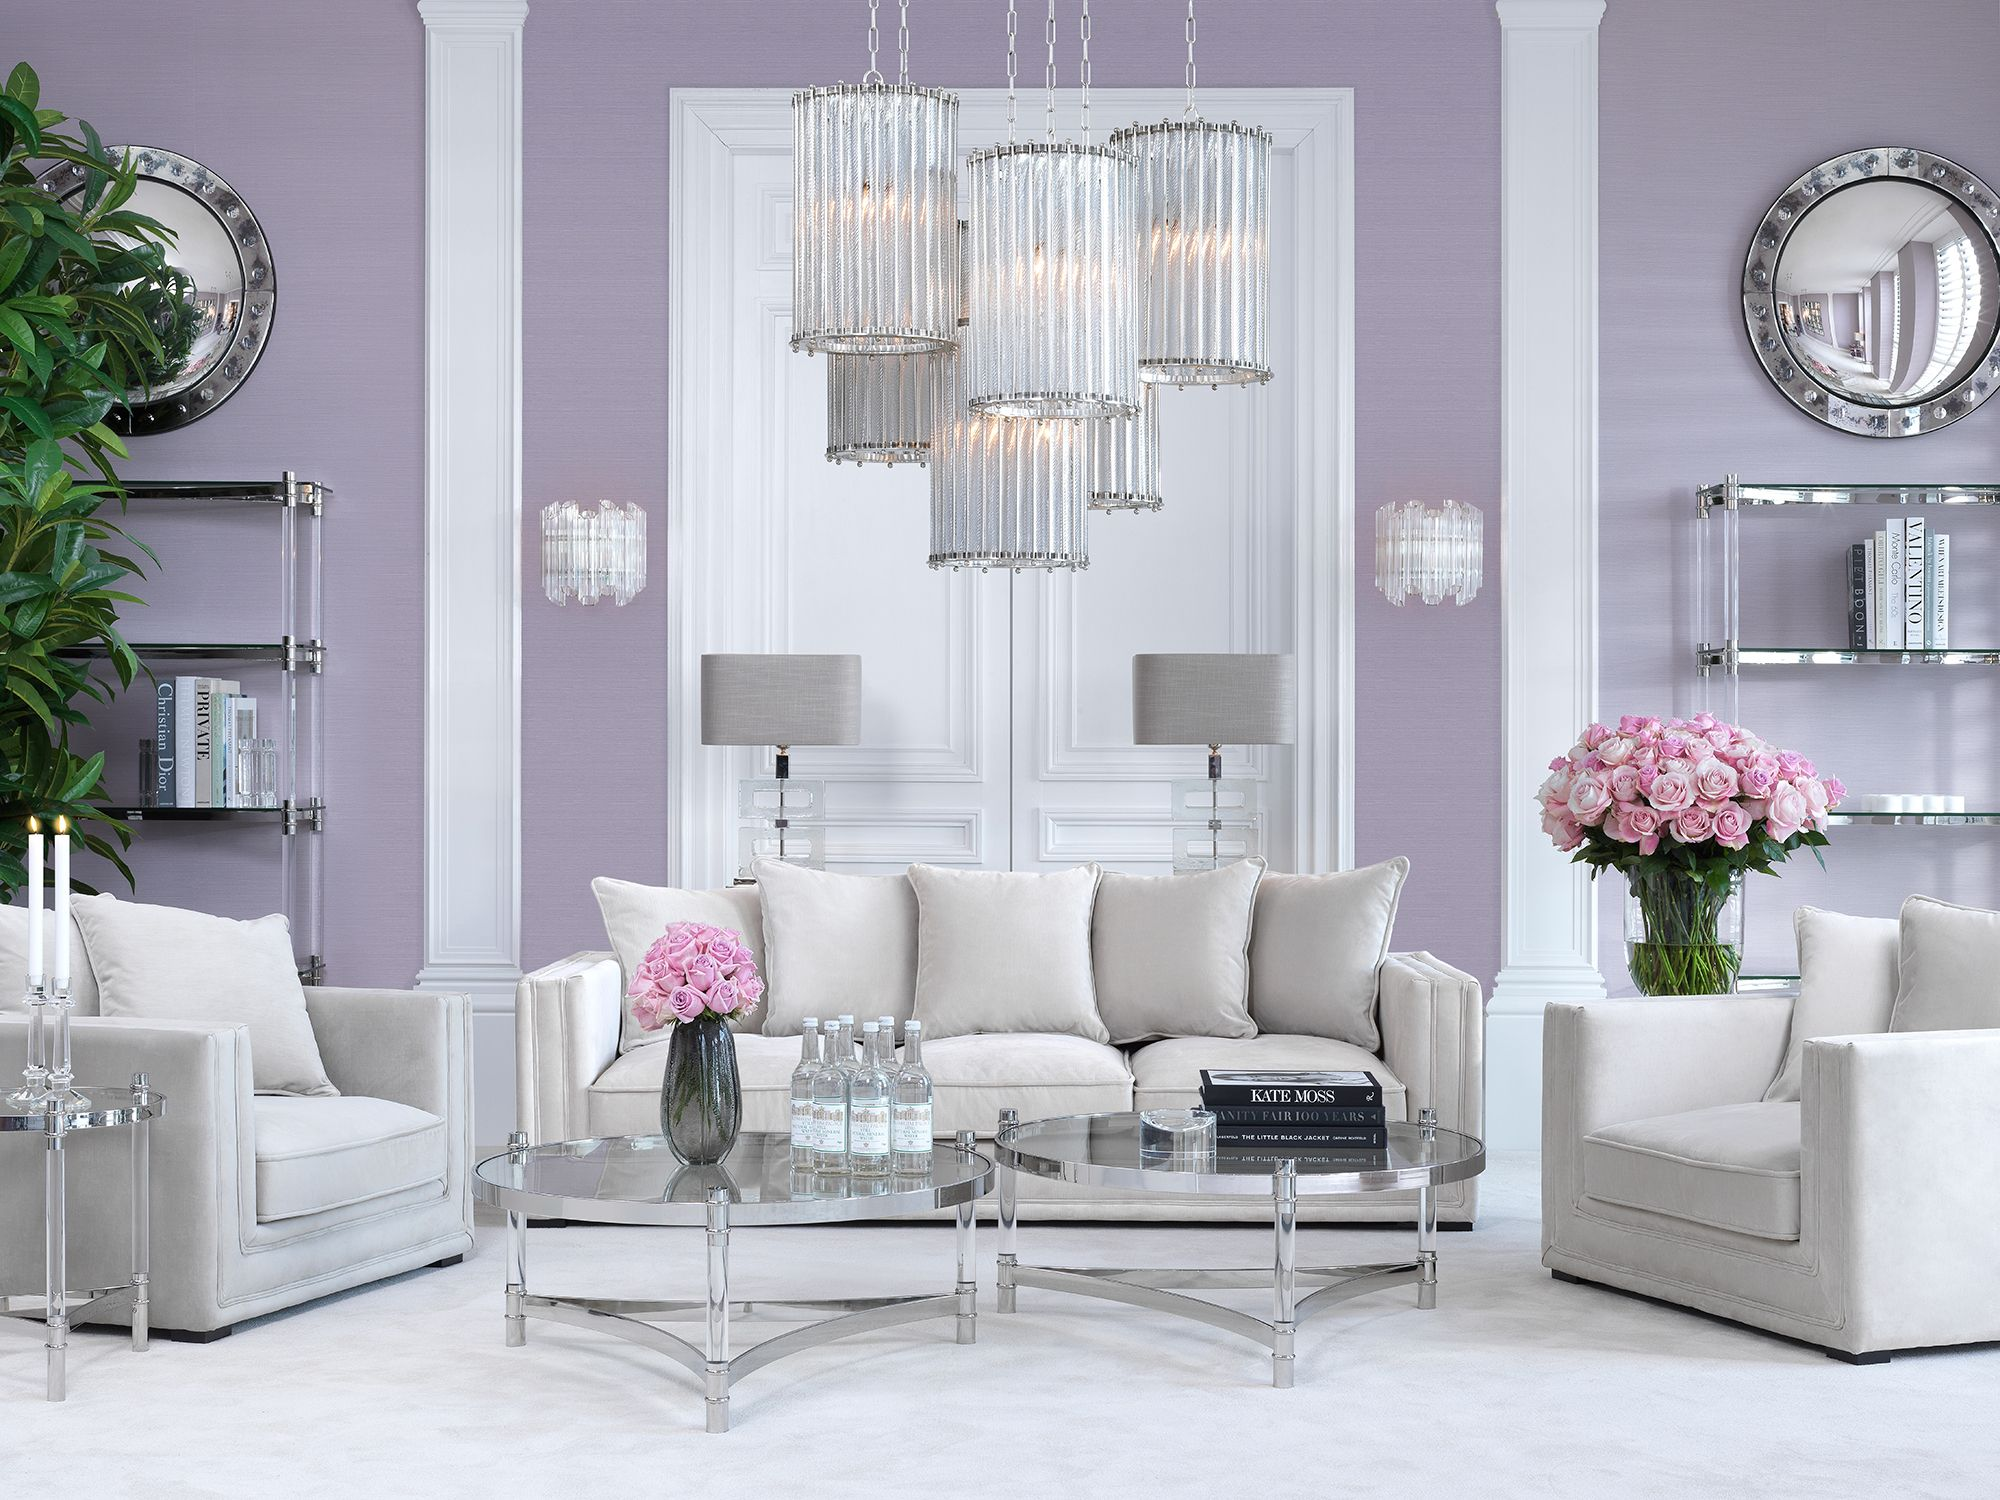 Eichholtz Furniture & Lighting | Home Design | This pastel-infused ...